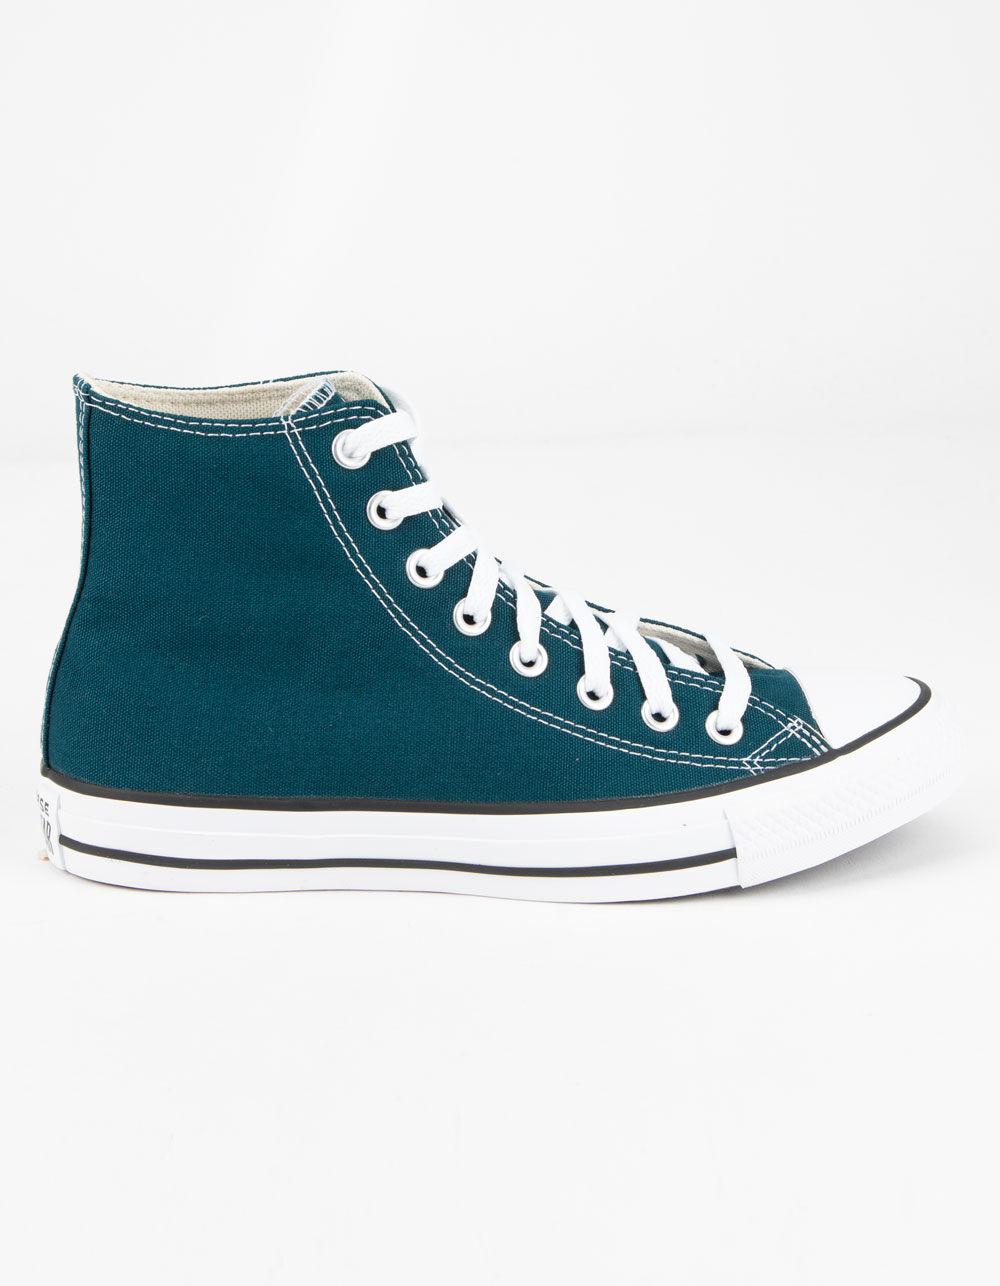 CONVERSE Chuck Taylor All Star Seasonal Color Midnight Turq High Top Shoes